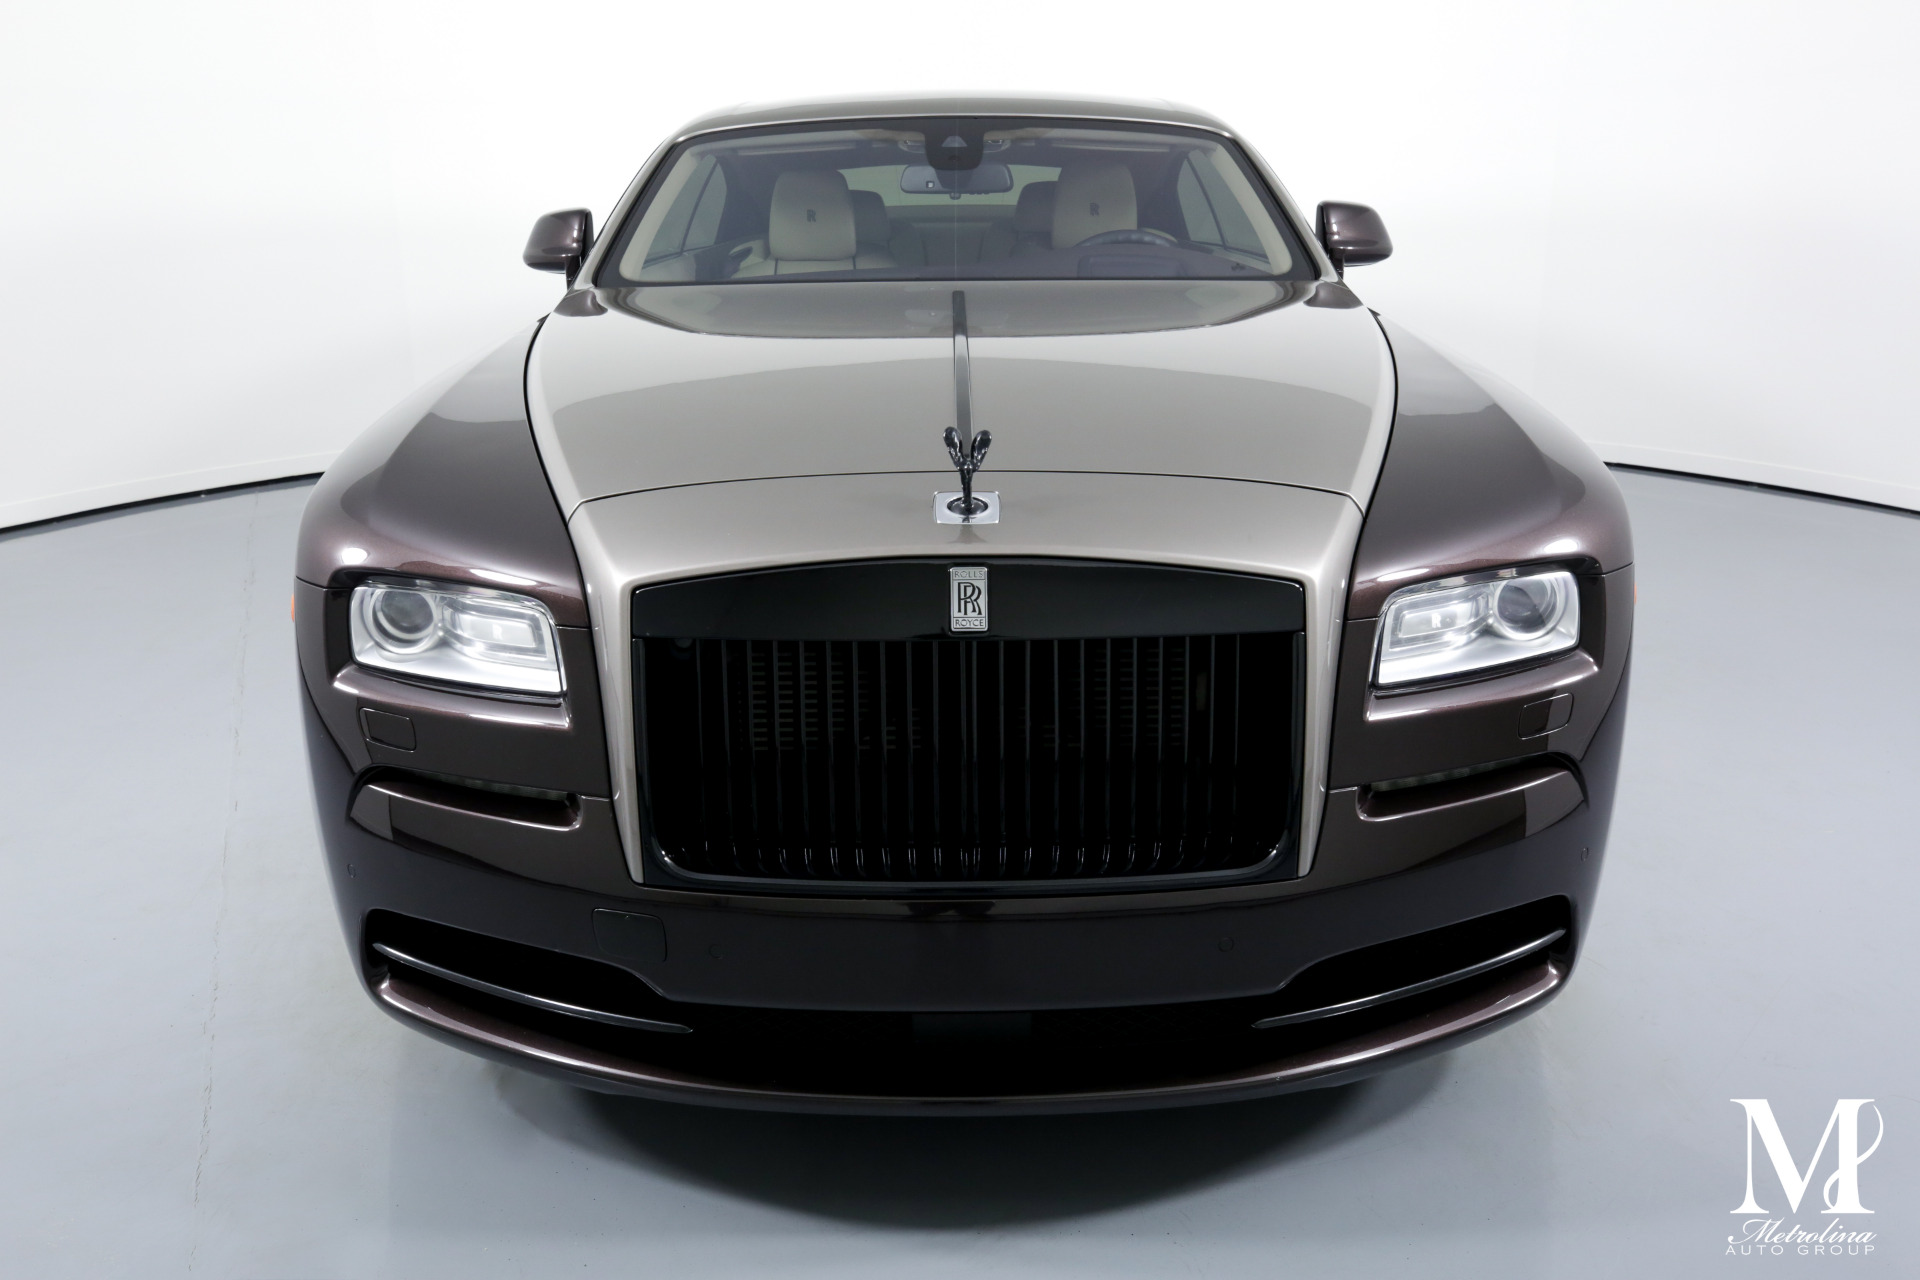 Used 2014 Rolls-Royce Wraith for sale Sold at Metrolina Auto Group in Charlotte NC 28217 - 3